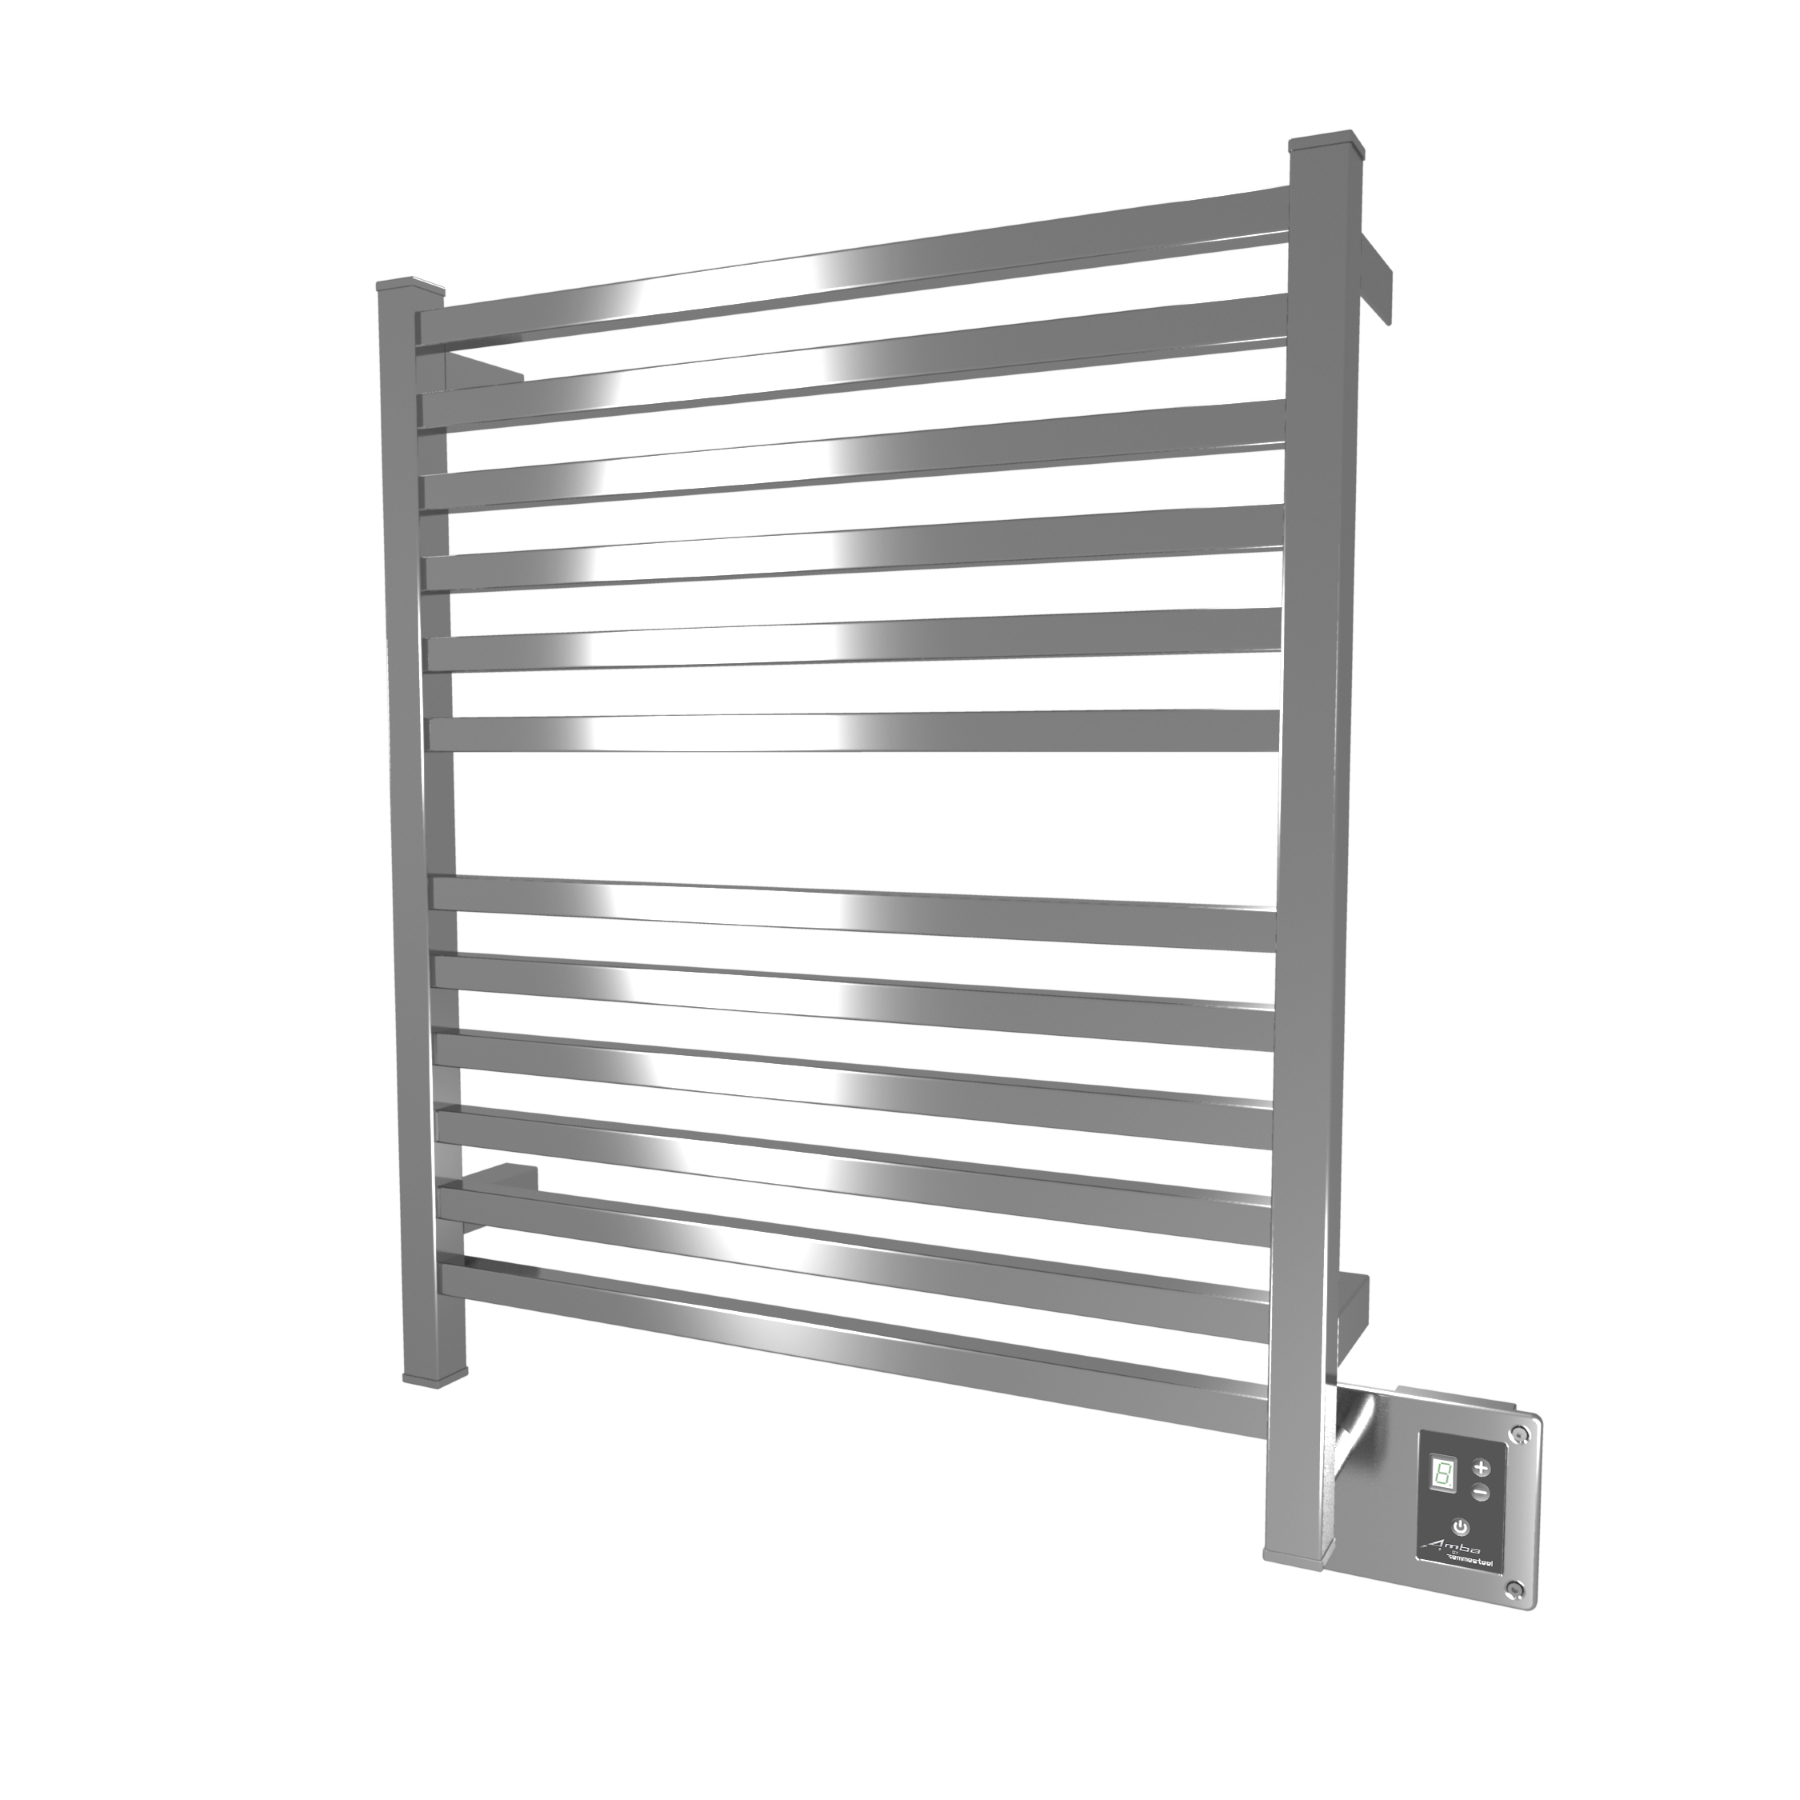 Amba High-end Towel Warmers